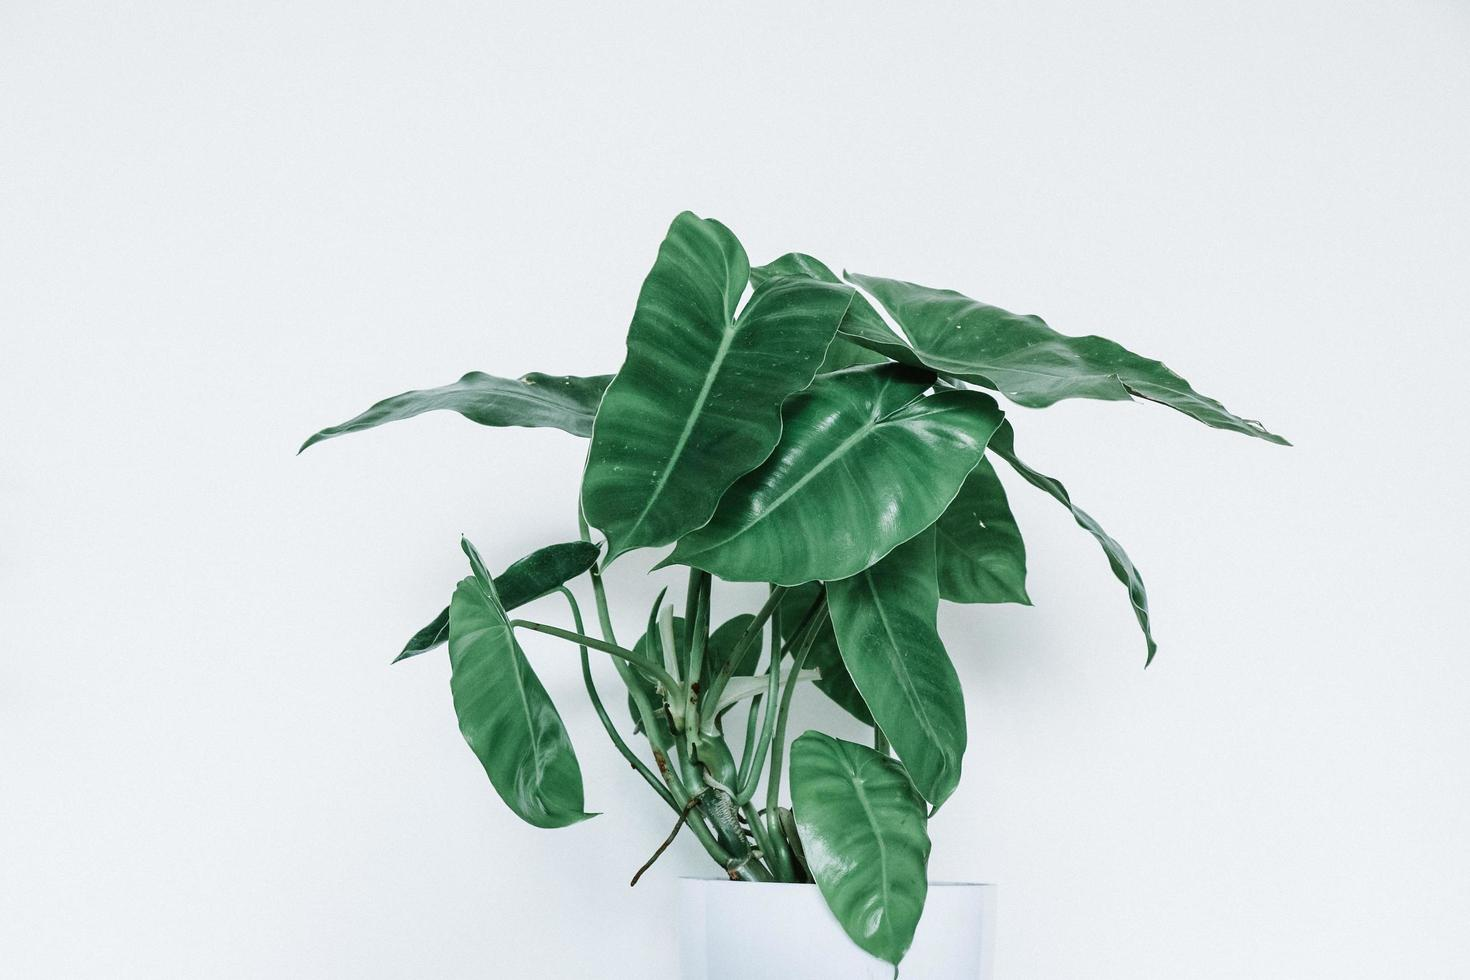 philodendron burle marx photo